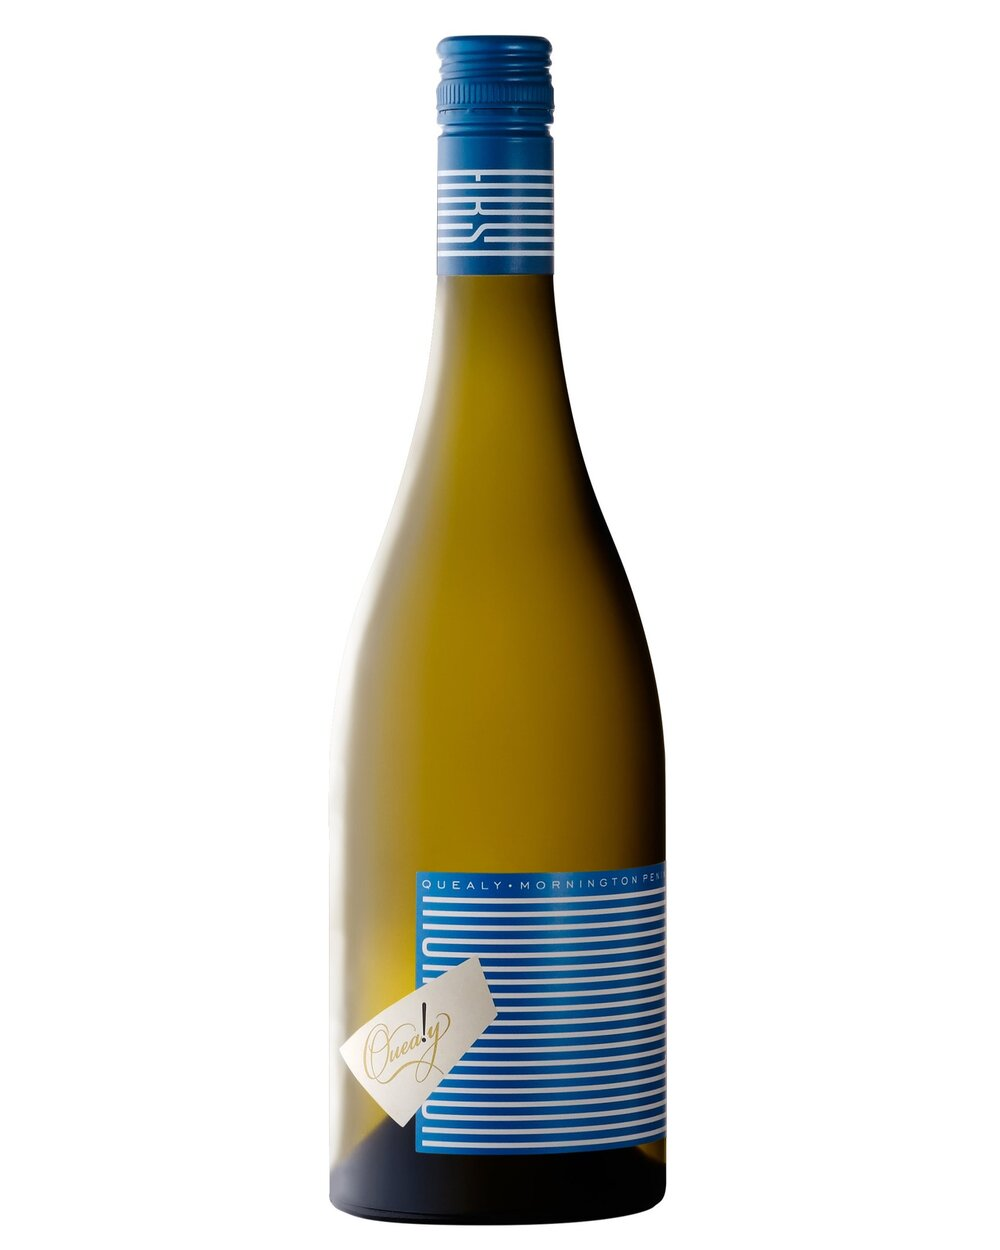 MORNINGTON PENINSULA PINOT GRIGIO | クイーリー モーニントン半島 ピノ・グリージョ   ¥3,600, 2017, 750, 13.8, HH 92, オーガニック, Hand Picked, cultured, membrane press 100% whole bunch, 24 hours on lees   Ranked 1 Pinot Grigio from Victoria.   ビクトリアの17のピノ・グリージョのうち、1位にランクされました。淡い麦わら色で、干し草、アーモンド、洋梨の香りなどのブーケ、蜂蜜とモルトのニュアンスで、手堅く発酵されたせいか、わずかに還元香がします。 ワインはやわらかさがあり軽くて飲みやすくも、ドライで抑制感があります。 フィニッシュはさわやか。 ピノ・グリージョのベンチマークとなるスタイルです。   Light straw colour, with a slightly reductive bouquet including straw, hay, almond and pear aromas - with touches of honey and malt, perhaps from fermenting on solids. The wine is light and easygoing, with softness and yet also dryness and restraint. The finish is refreshing. A benchmark grigio style.